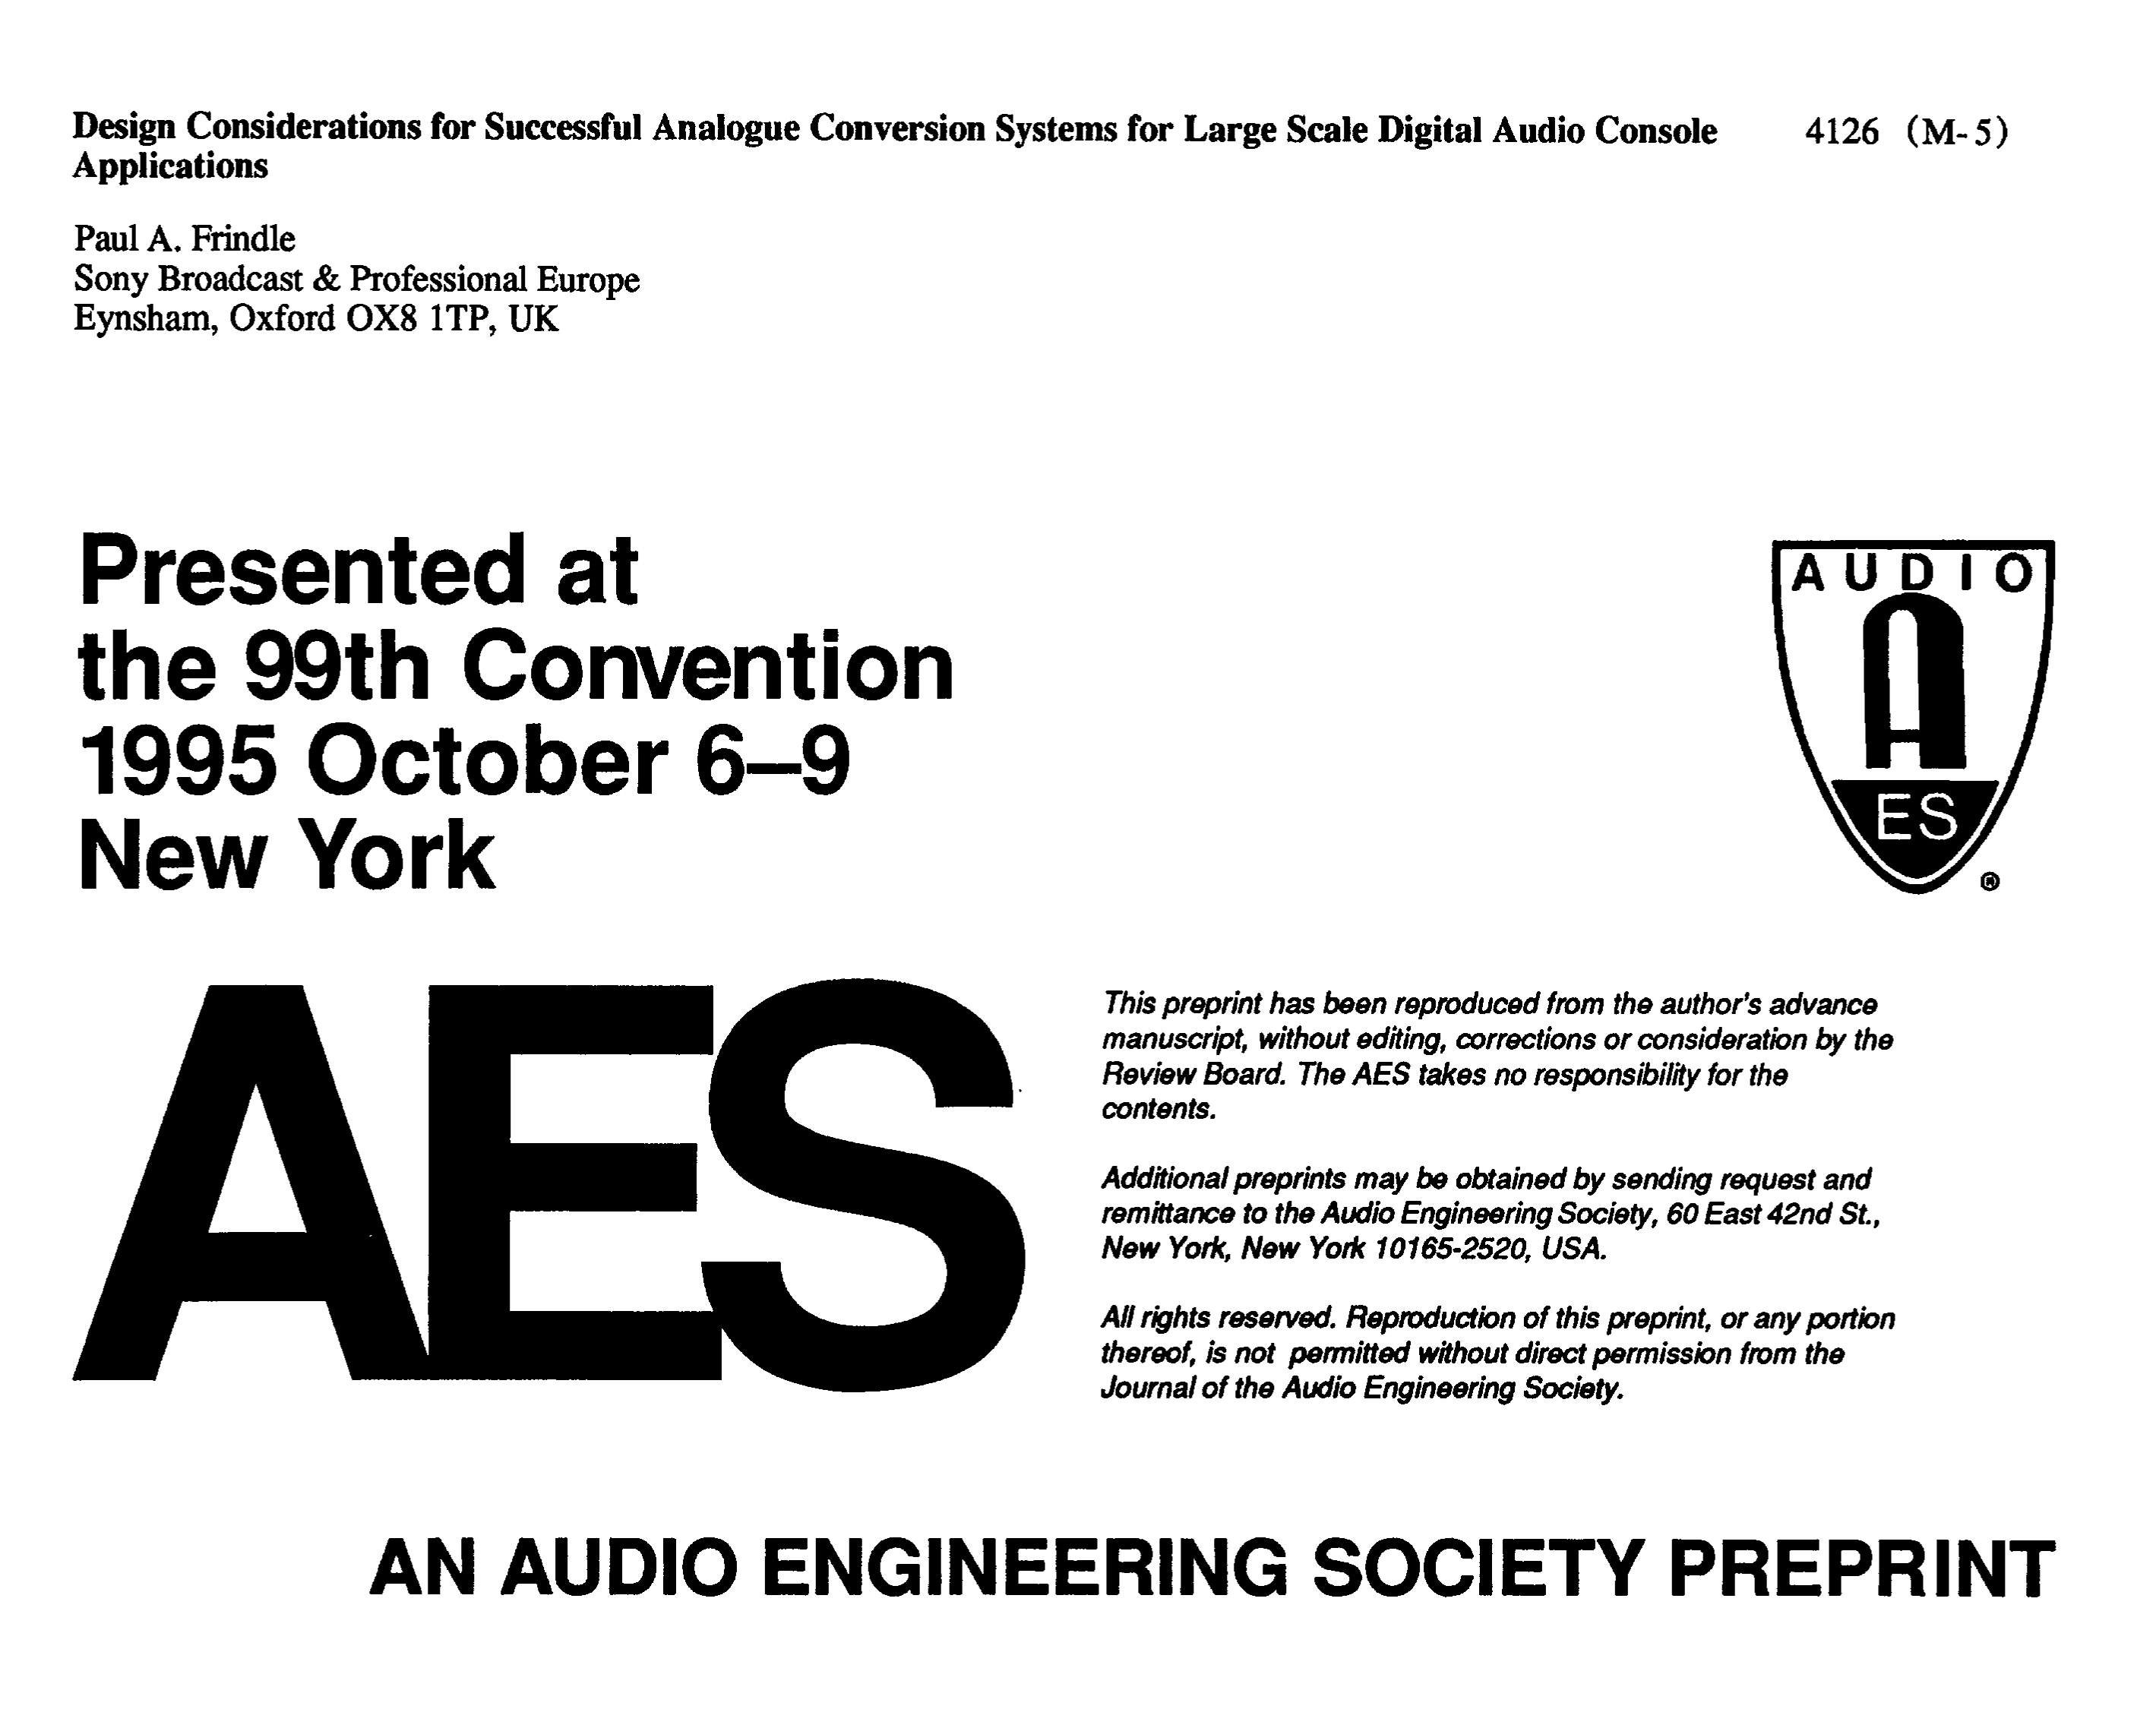 Aes E Library Design Considerations For Successful Analog Audio Line Highend Preamplifier With Ics Conversion Systems Large Scale Digital Console Applications